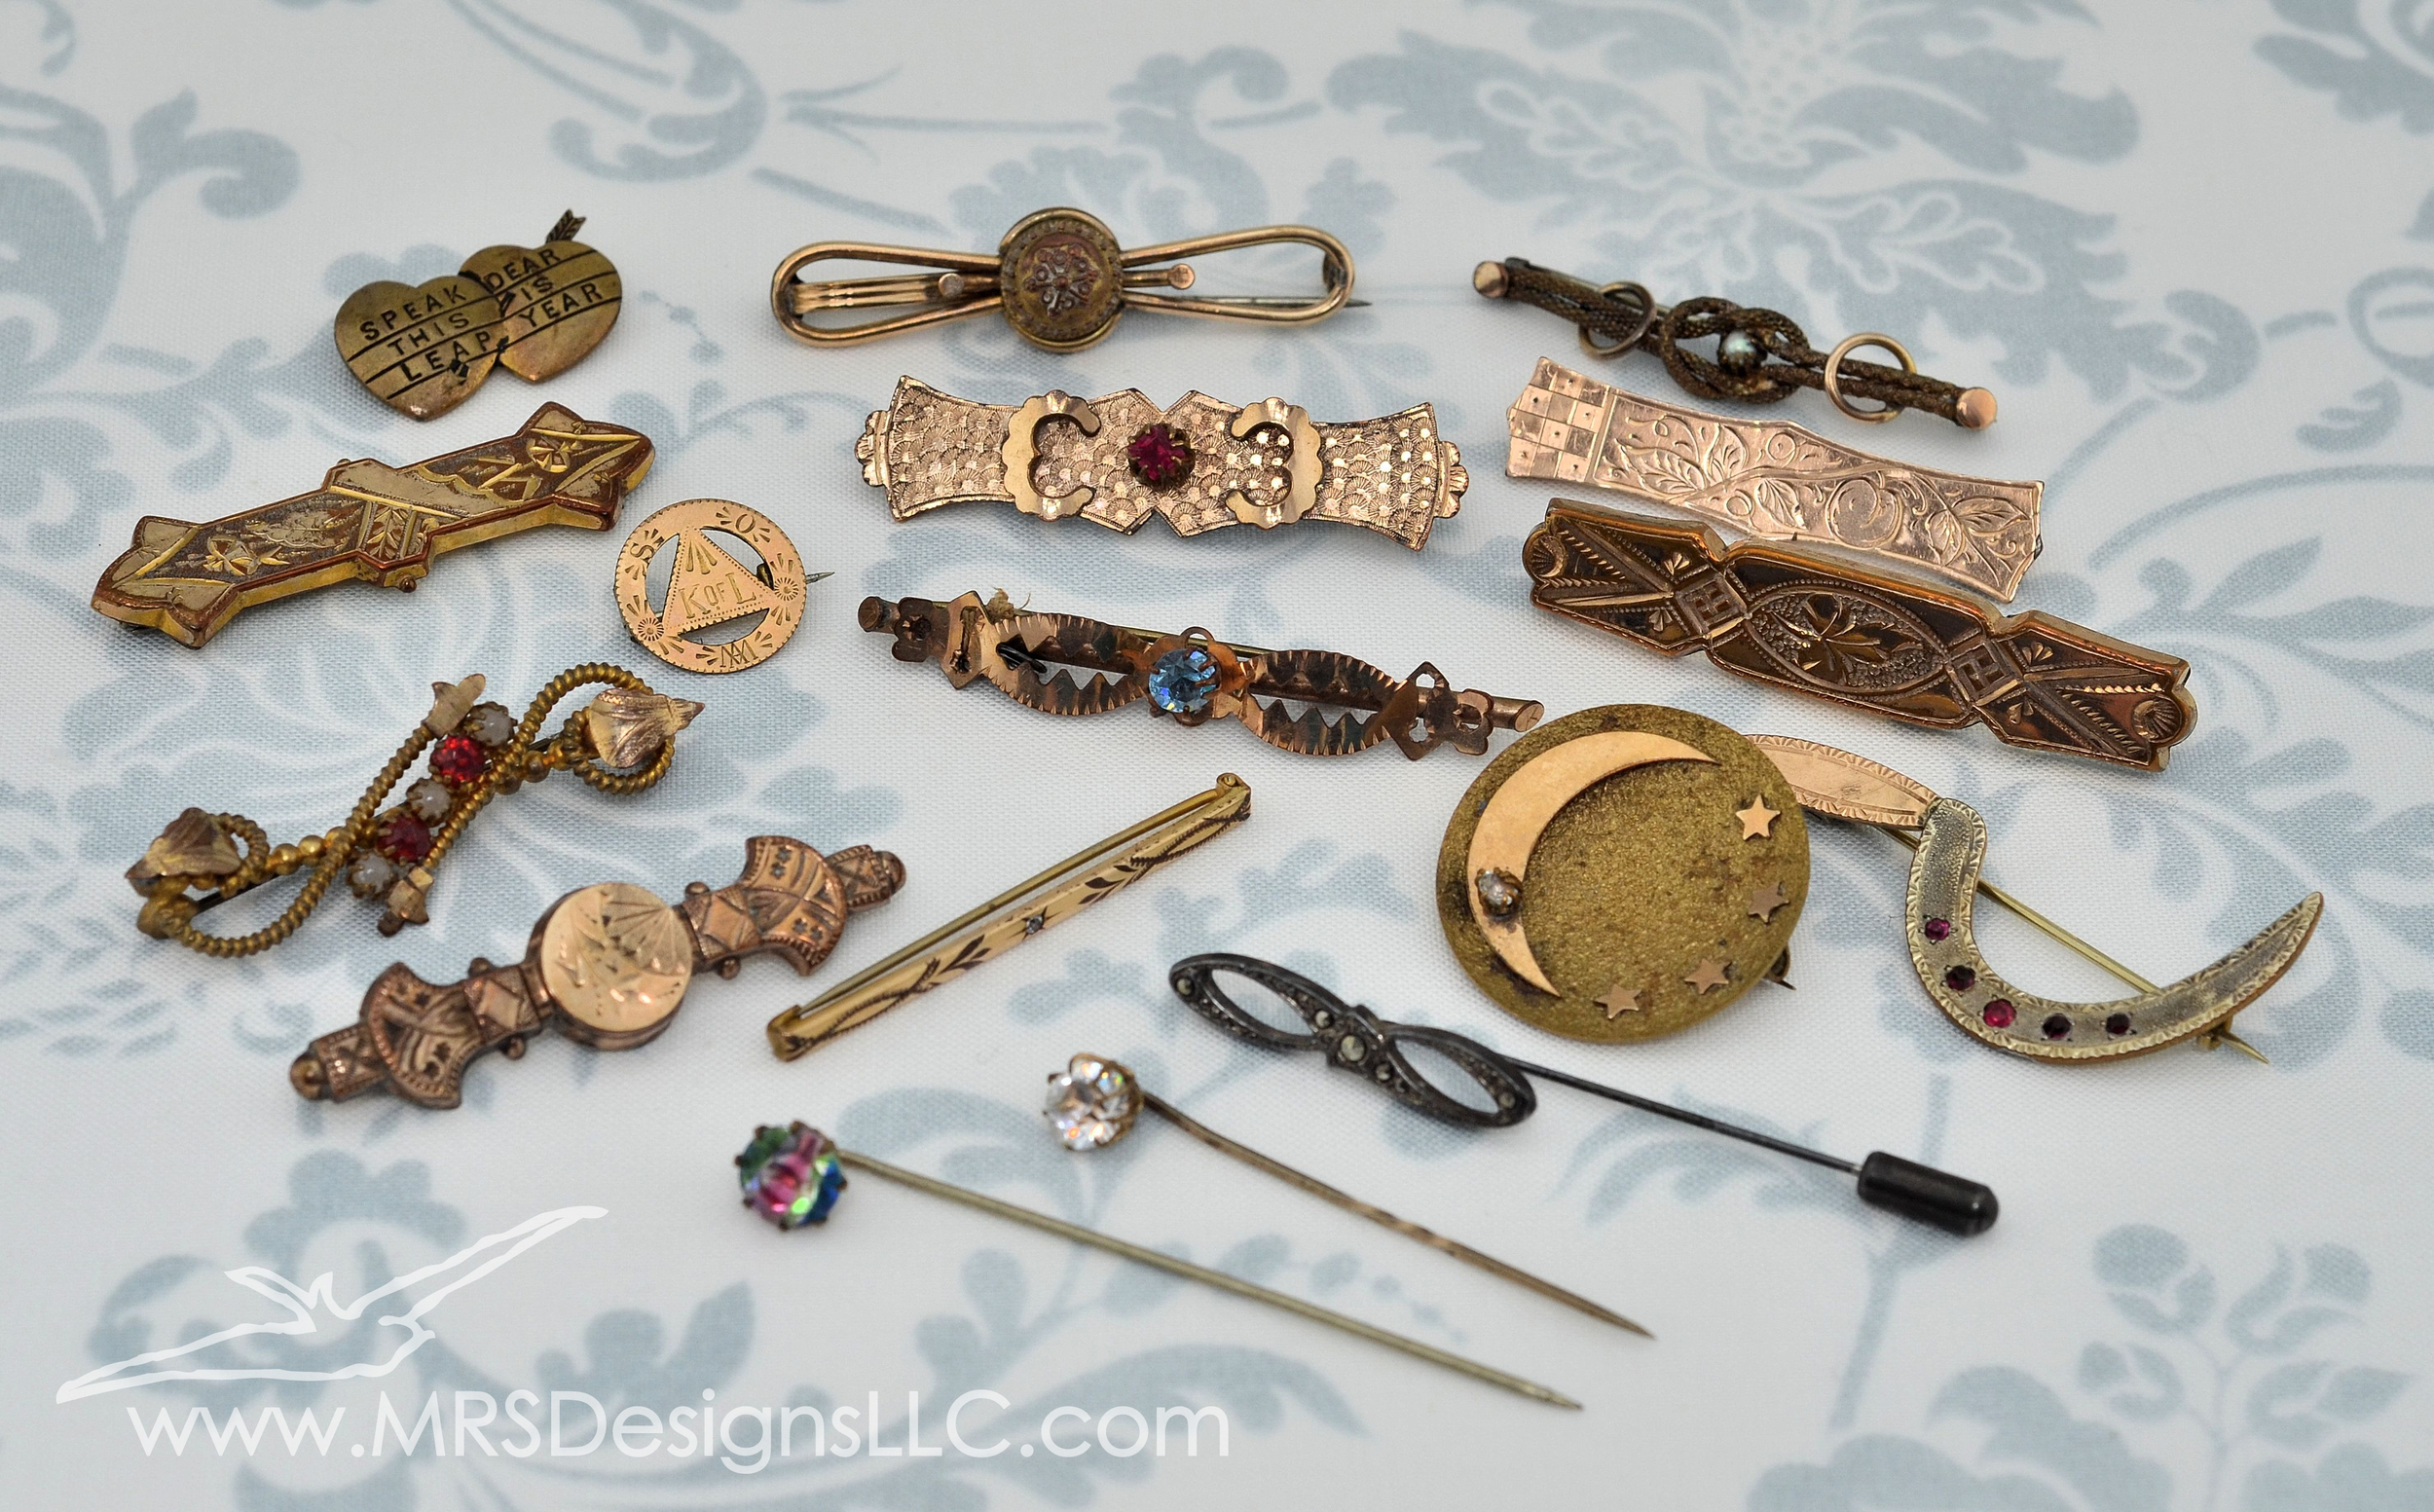 MRS Designs Blog - Vintage Pins from a Live Auction